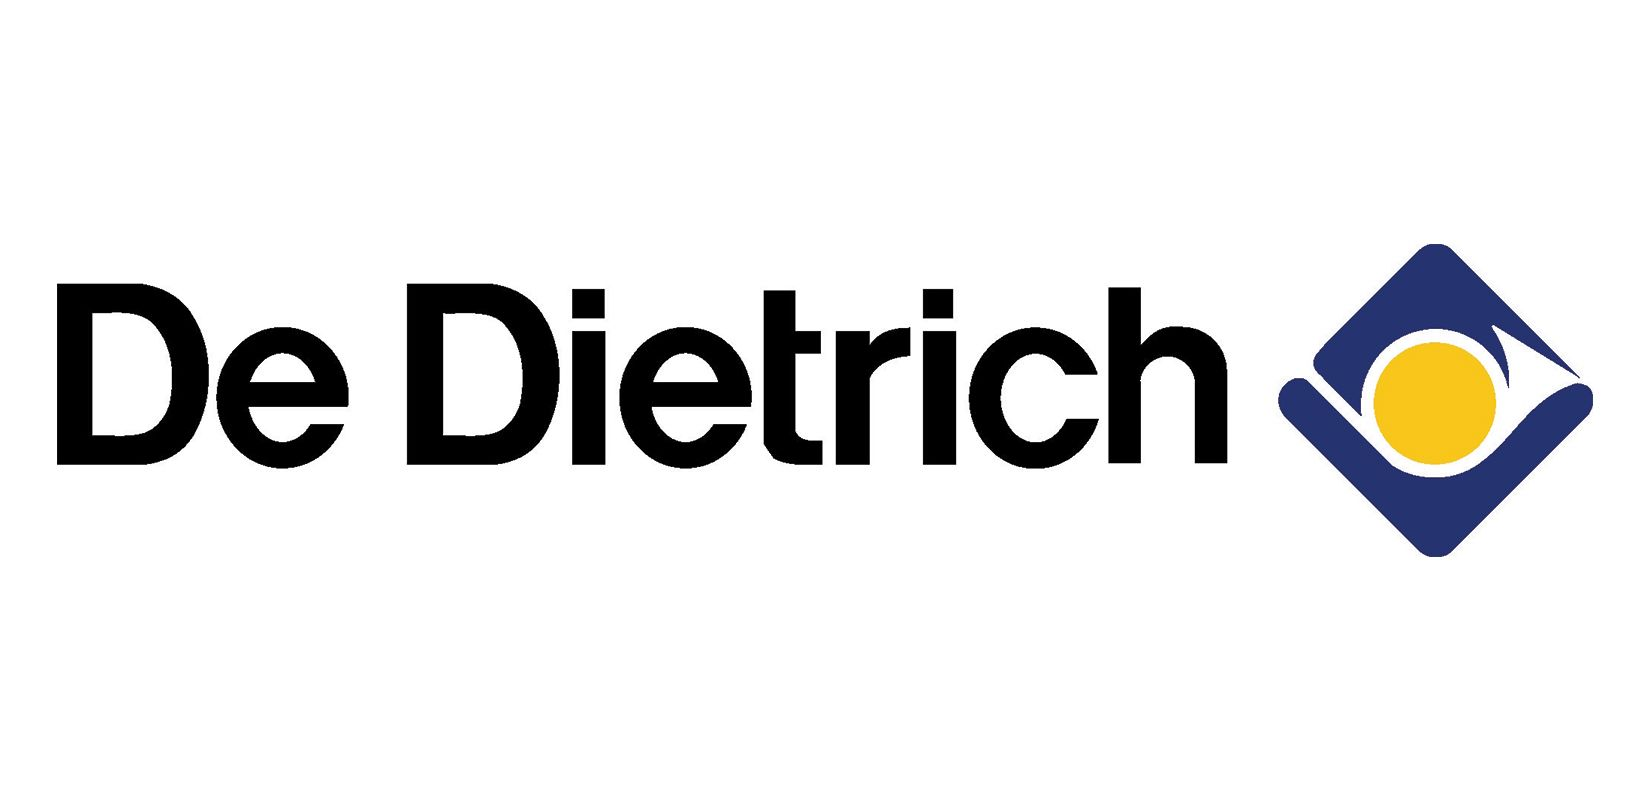 Miele Washing Machine Repairs >> Dedietrich Repairs - Washing Machine, Dishwasher, Oven, Cooker, Fridge Freezer Repair